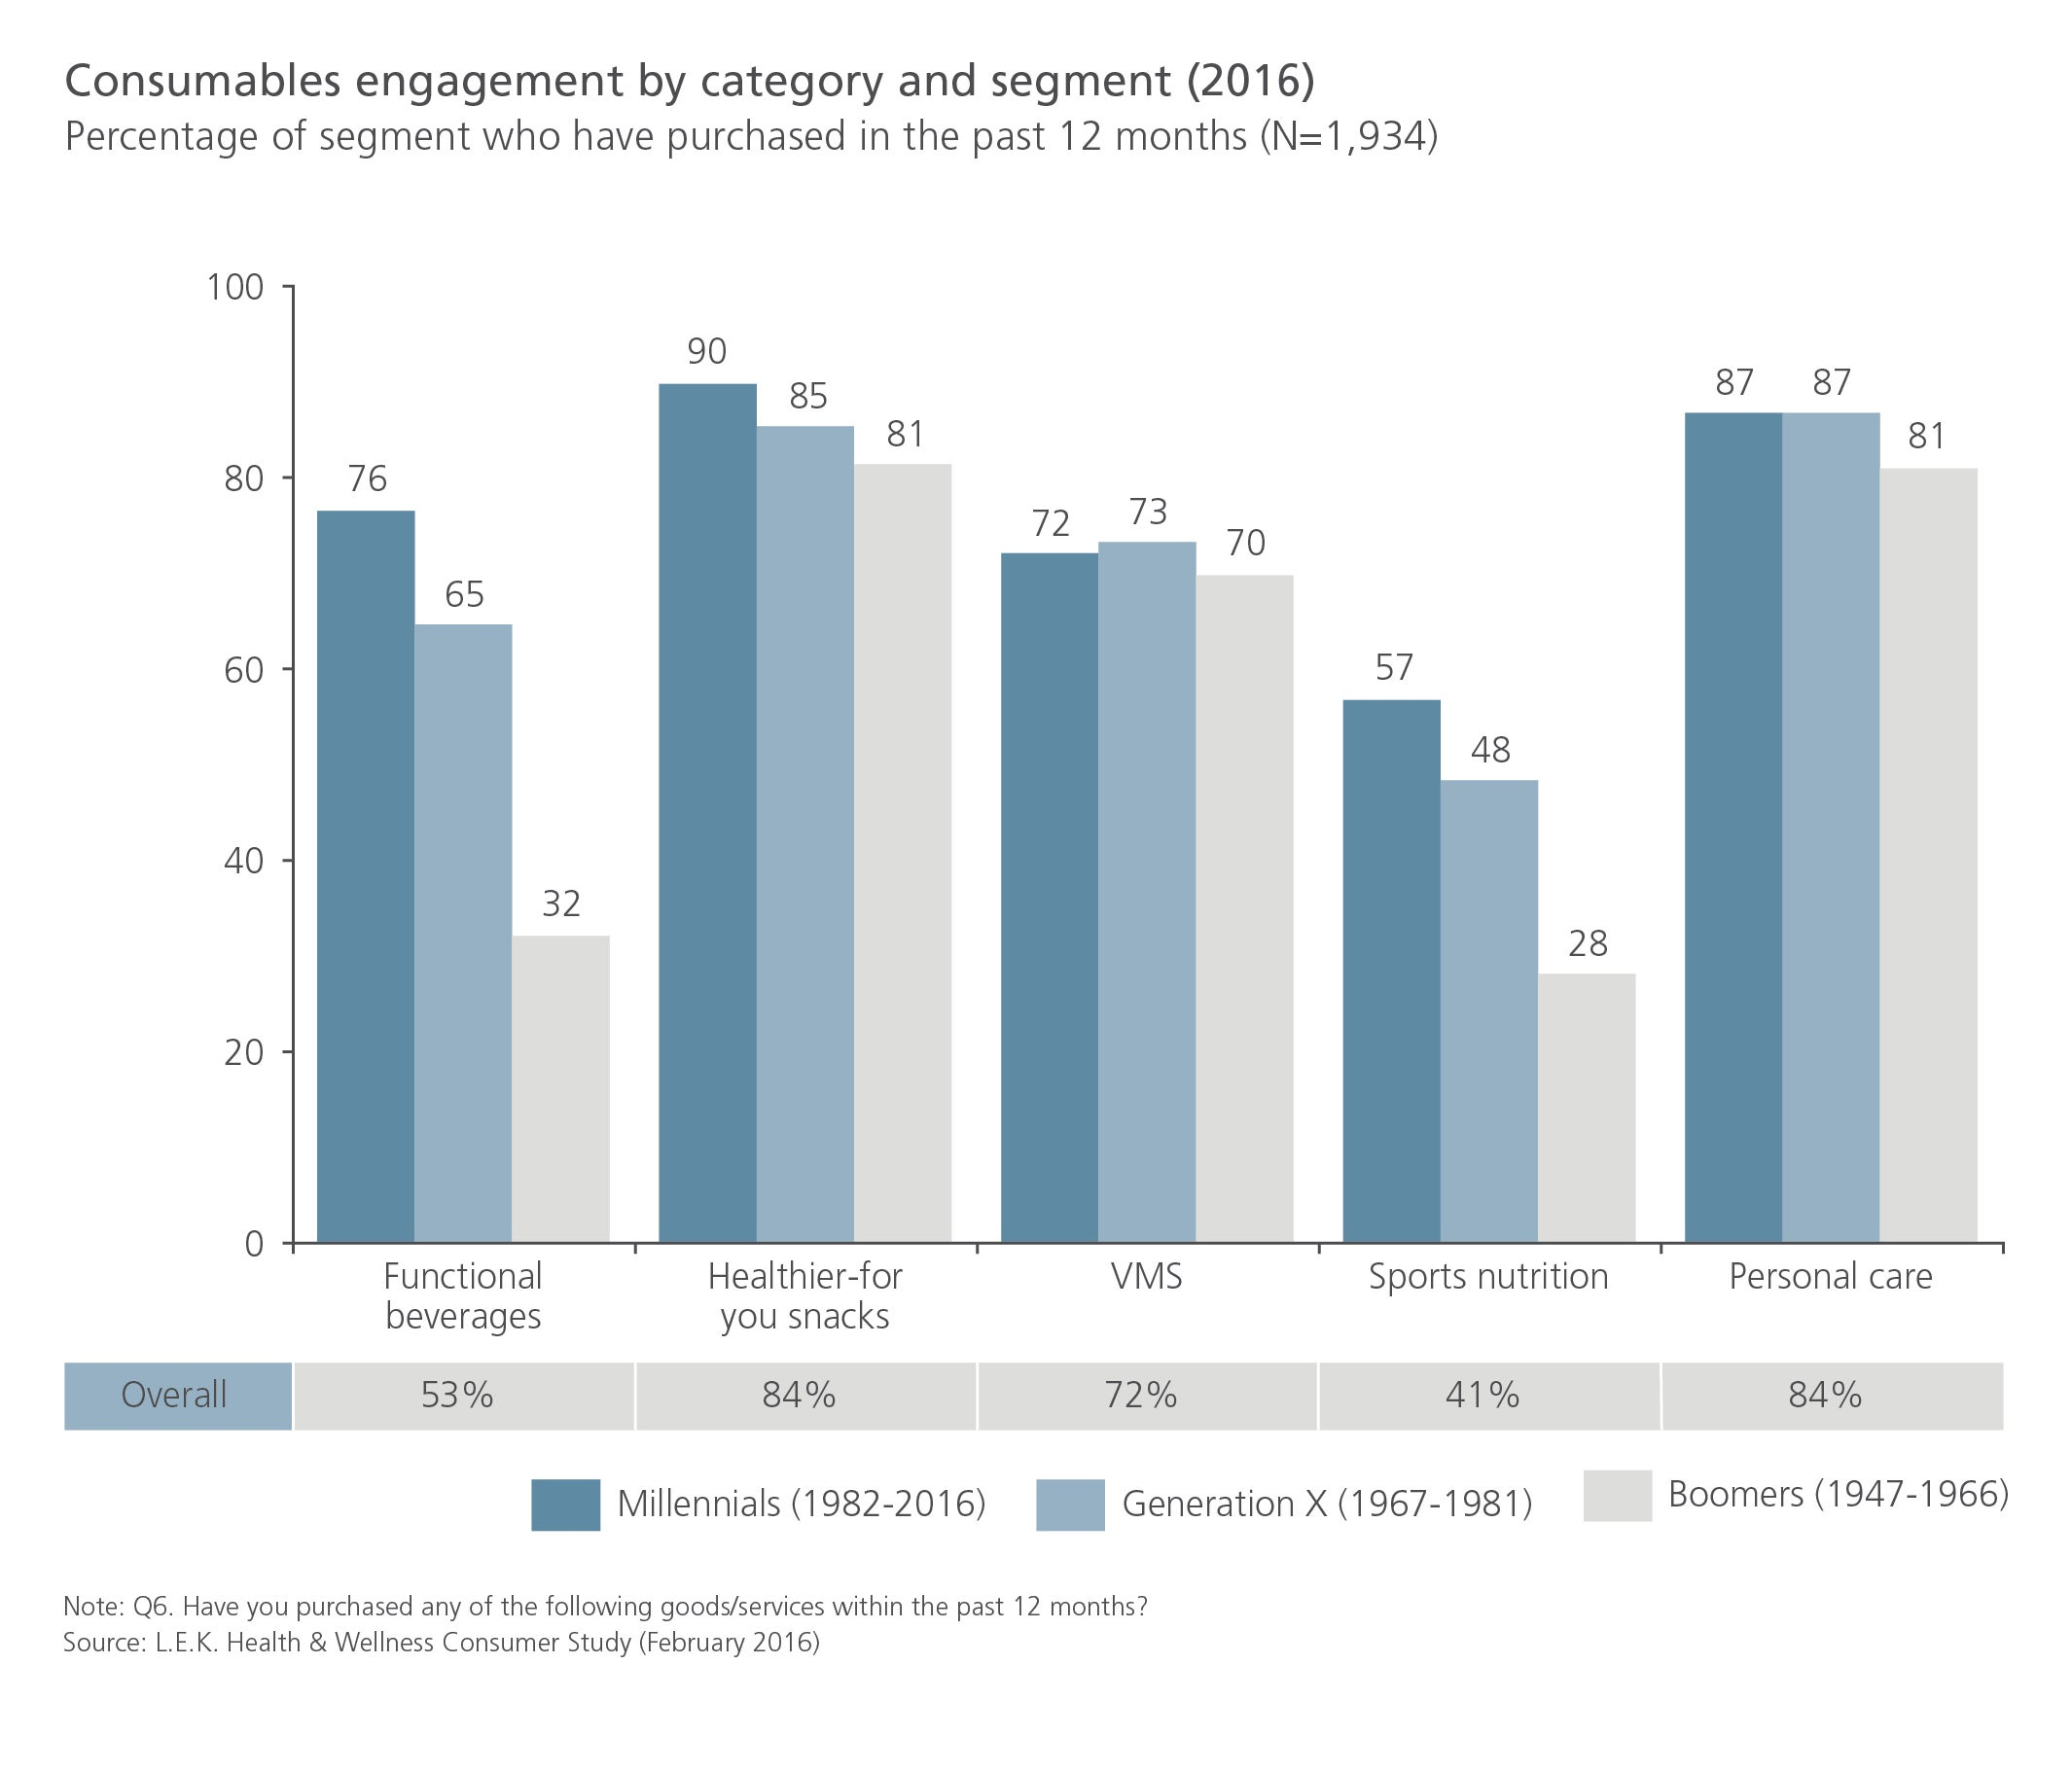 Consumables engagement by category and segment (2016)